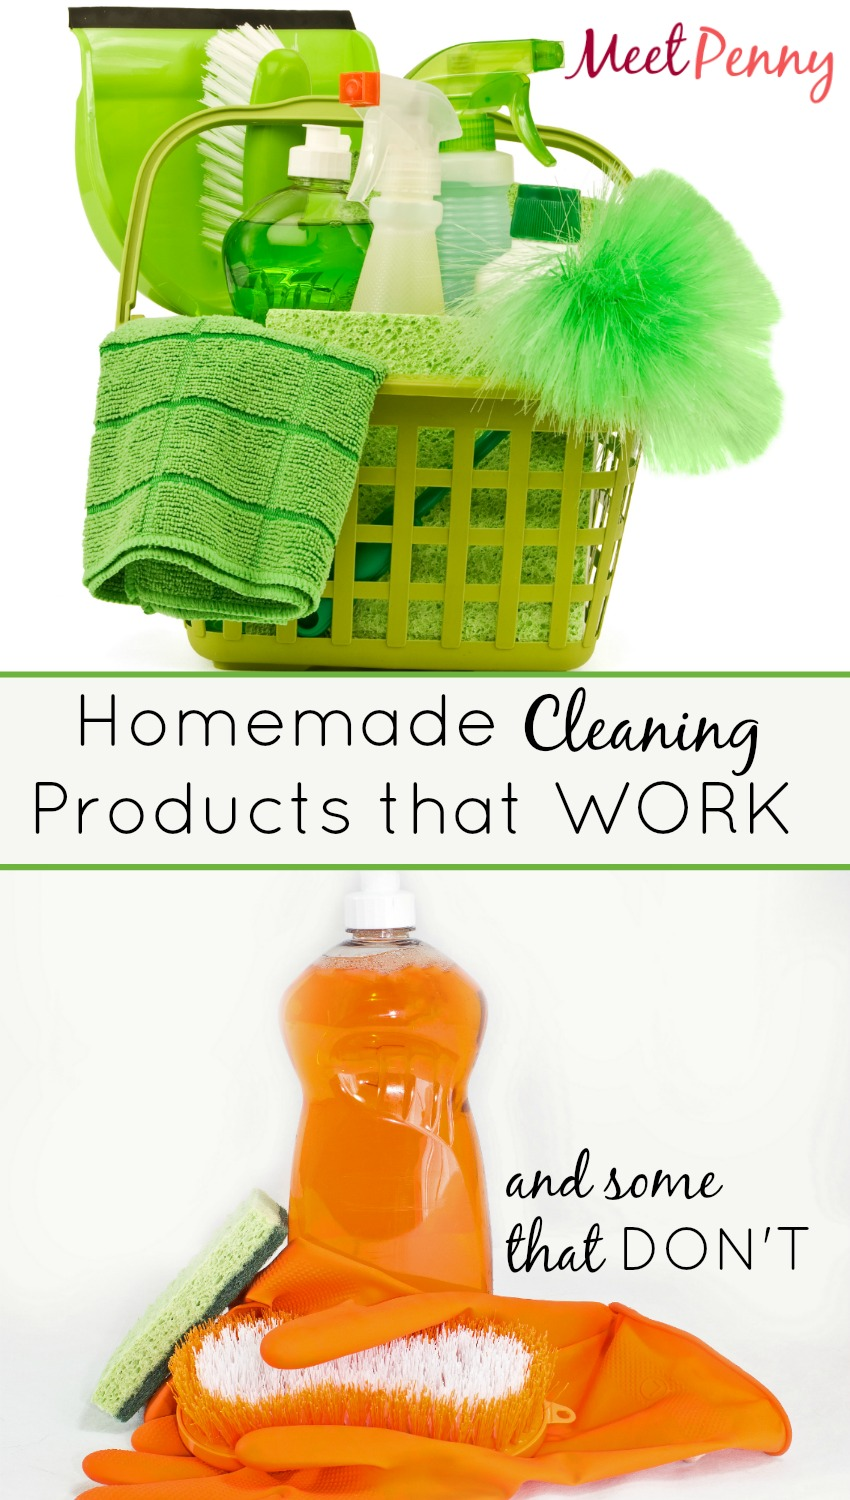 Homemade Cleaning Products that Work (and some that don't)